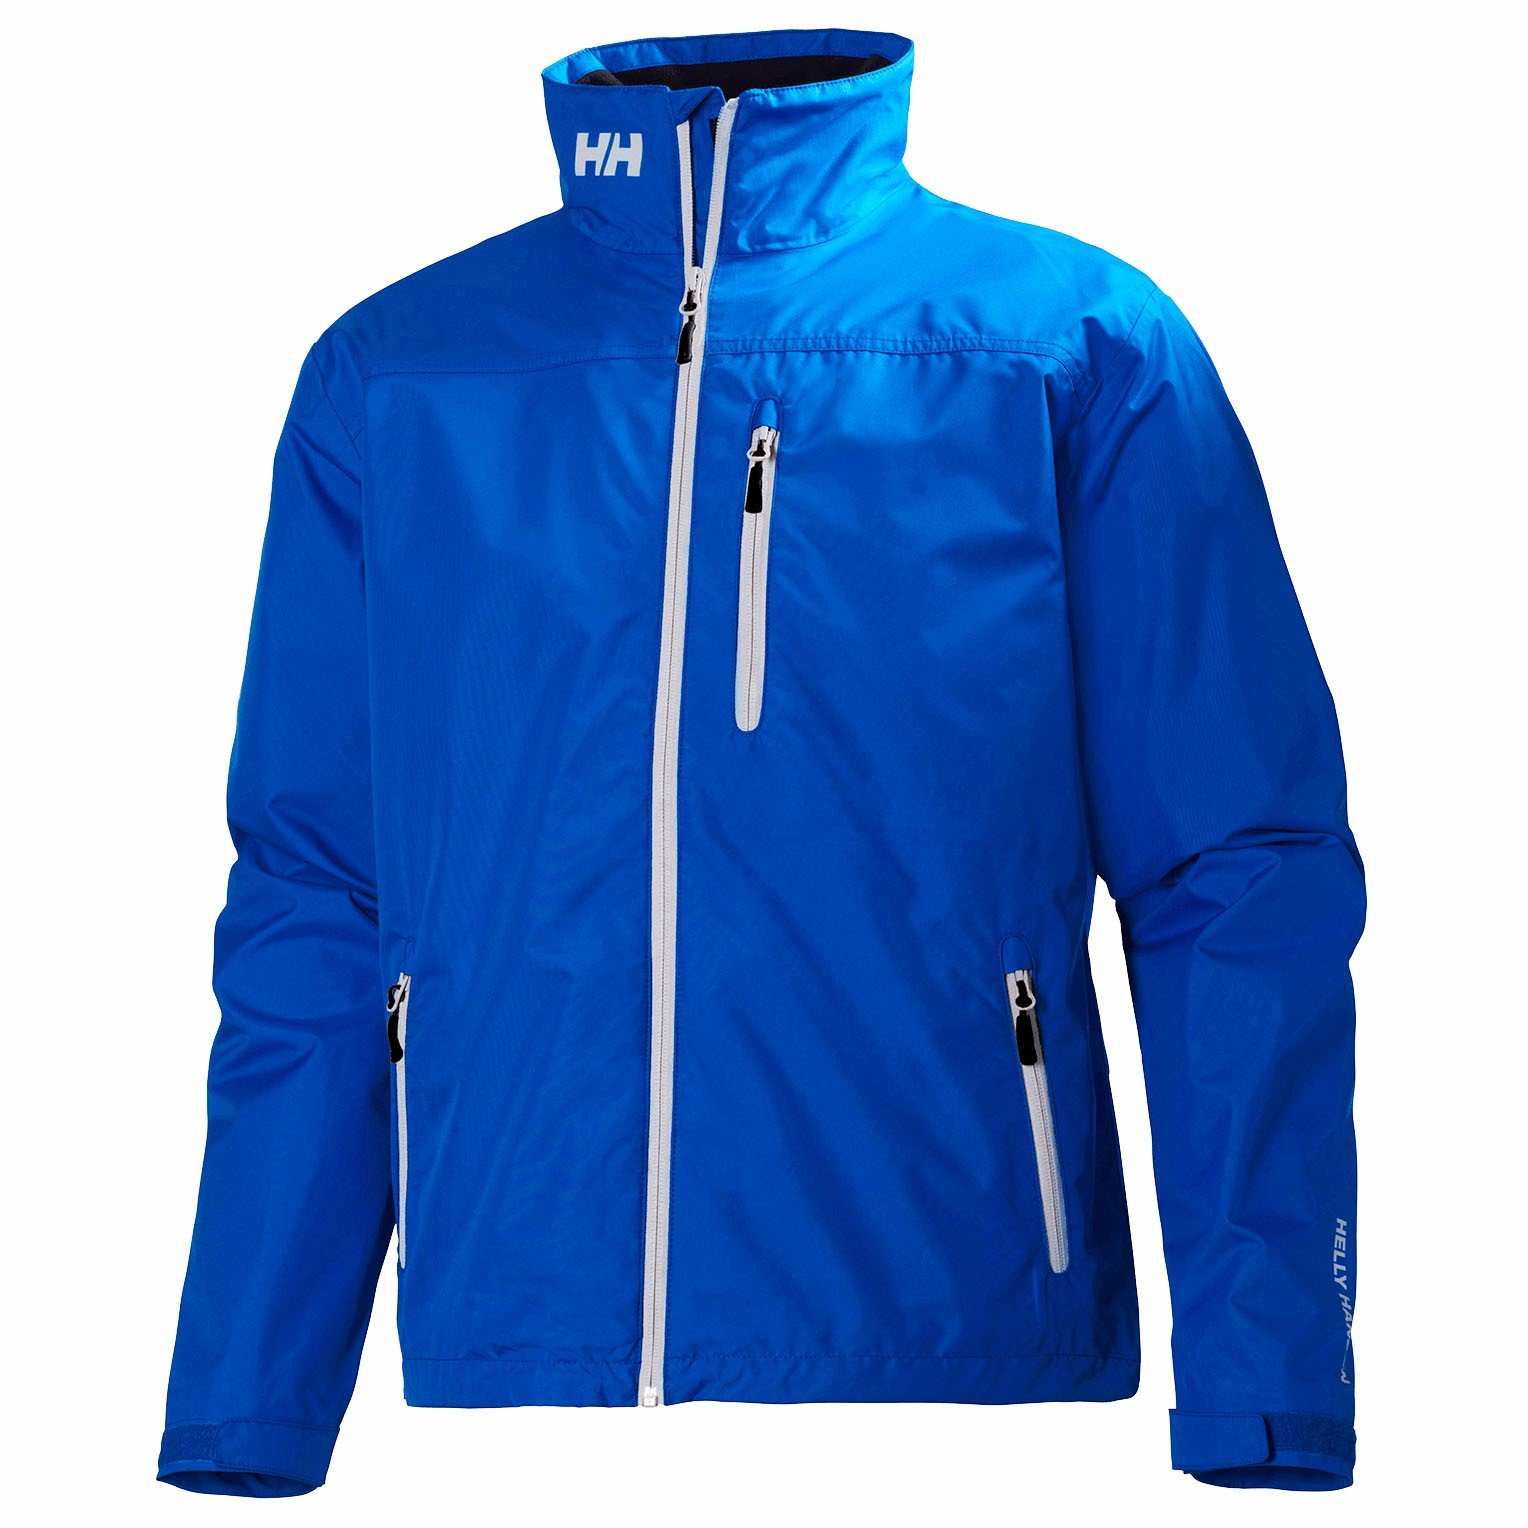 Helly Hansen Men's Crew Jacket, Olympian Blue, 3X-Large by Helly Hansen